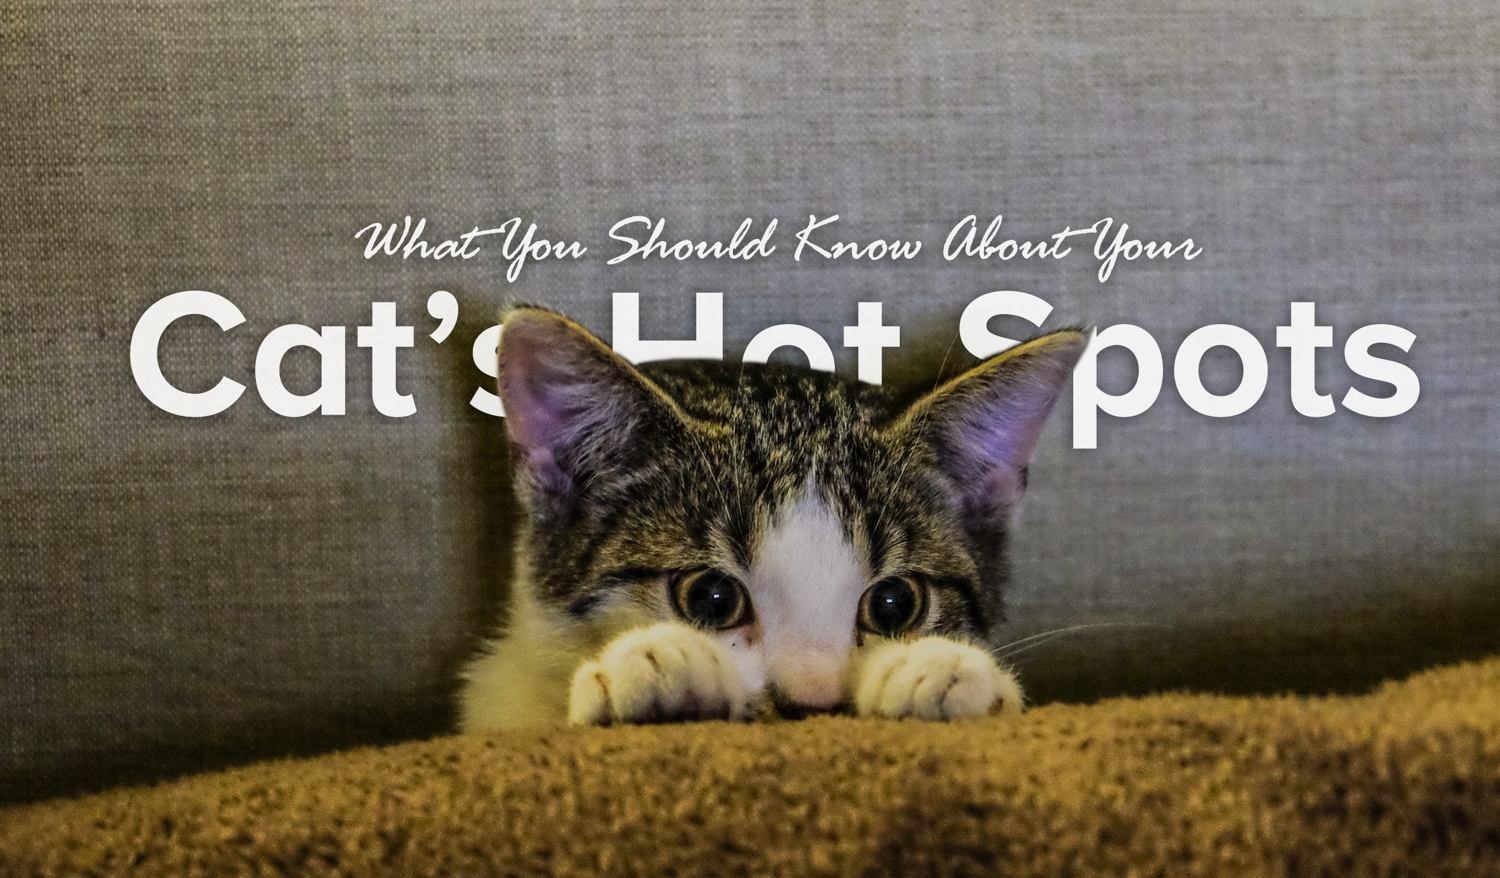 What You Should Know About Your Cat's Hot Spots